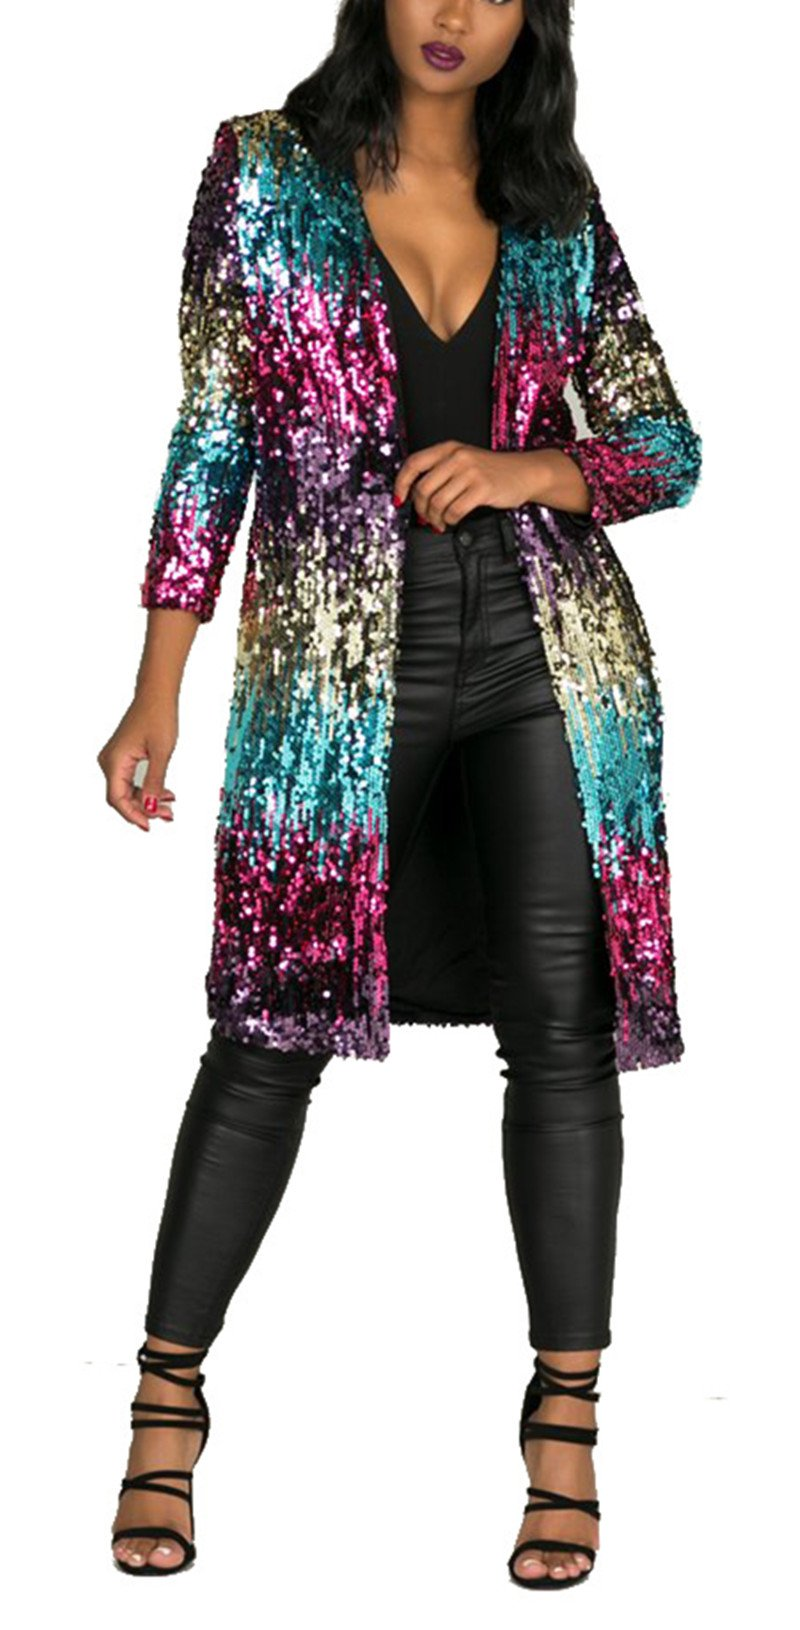 Women's Spring Fall Cover Up Long Sleeve Sparkling Sequins Long Loose Open Front Cardigan Coat Party Club Stage Dress S by Fashion Cluster